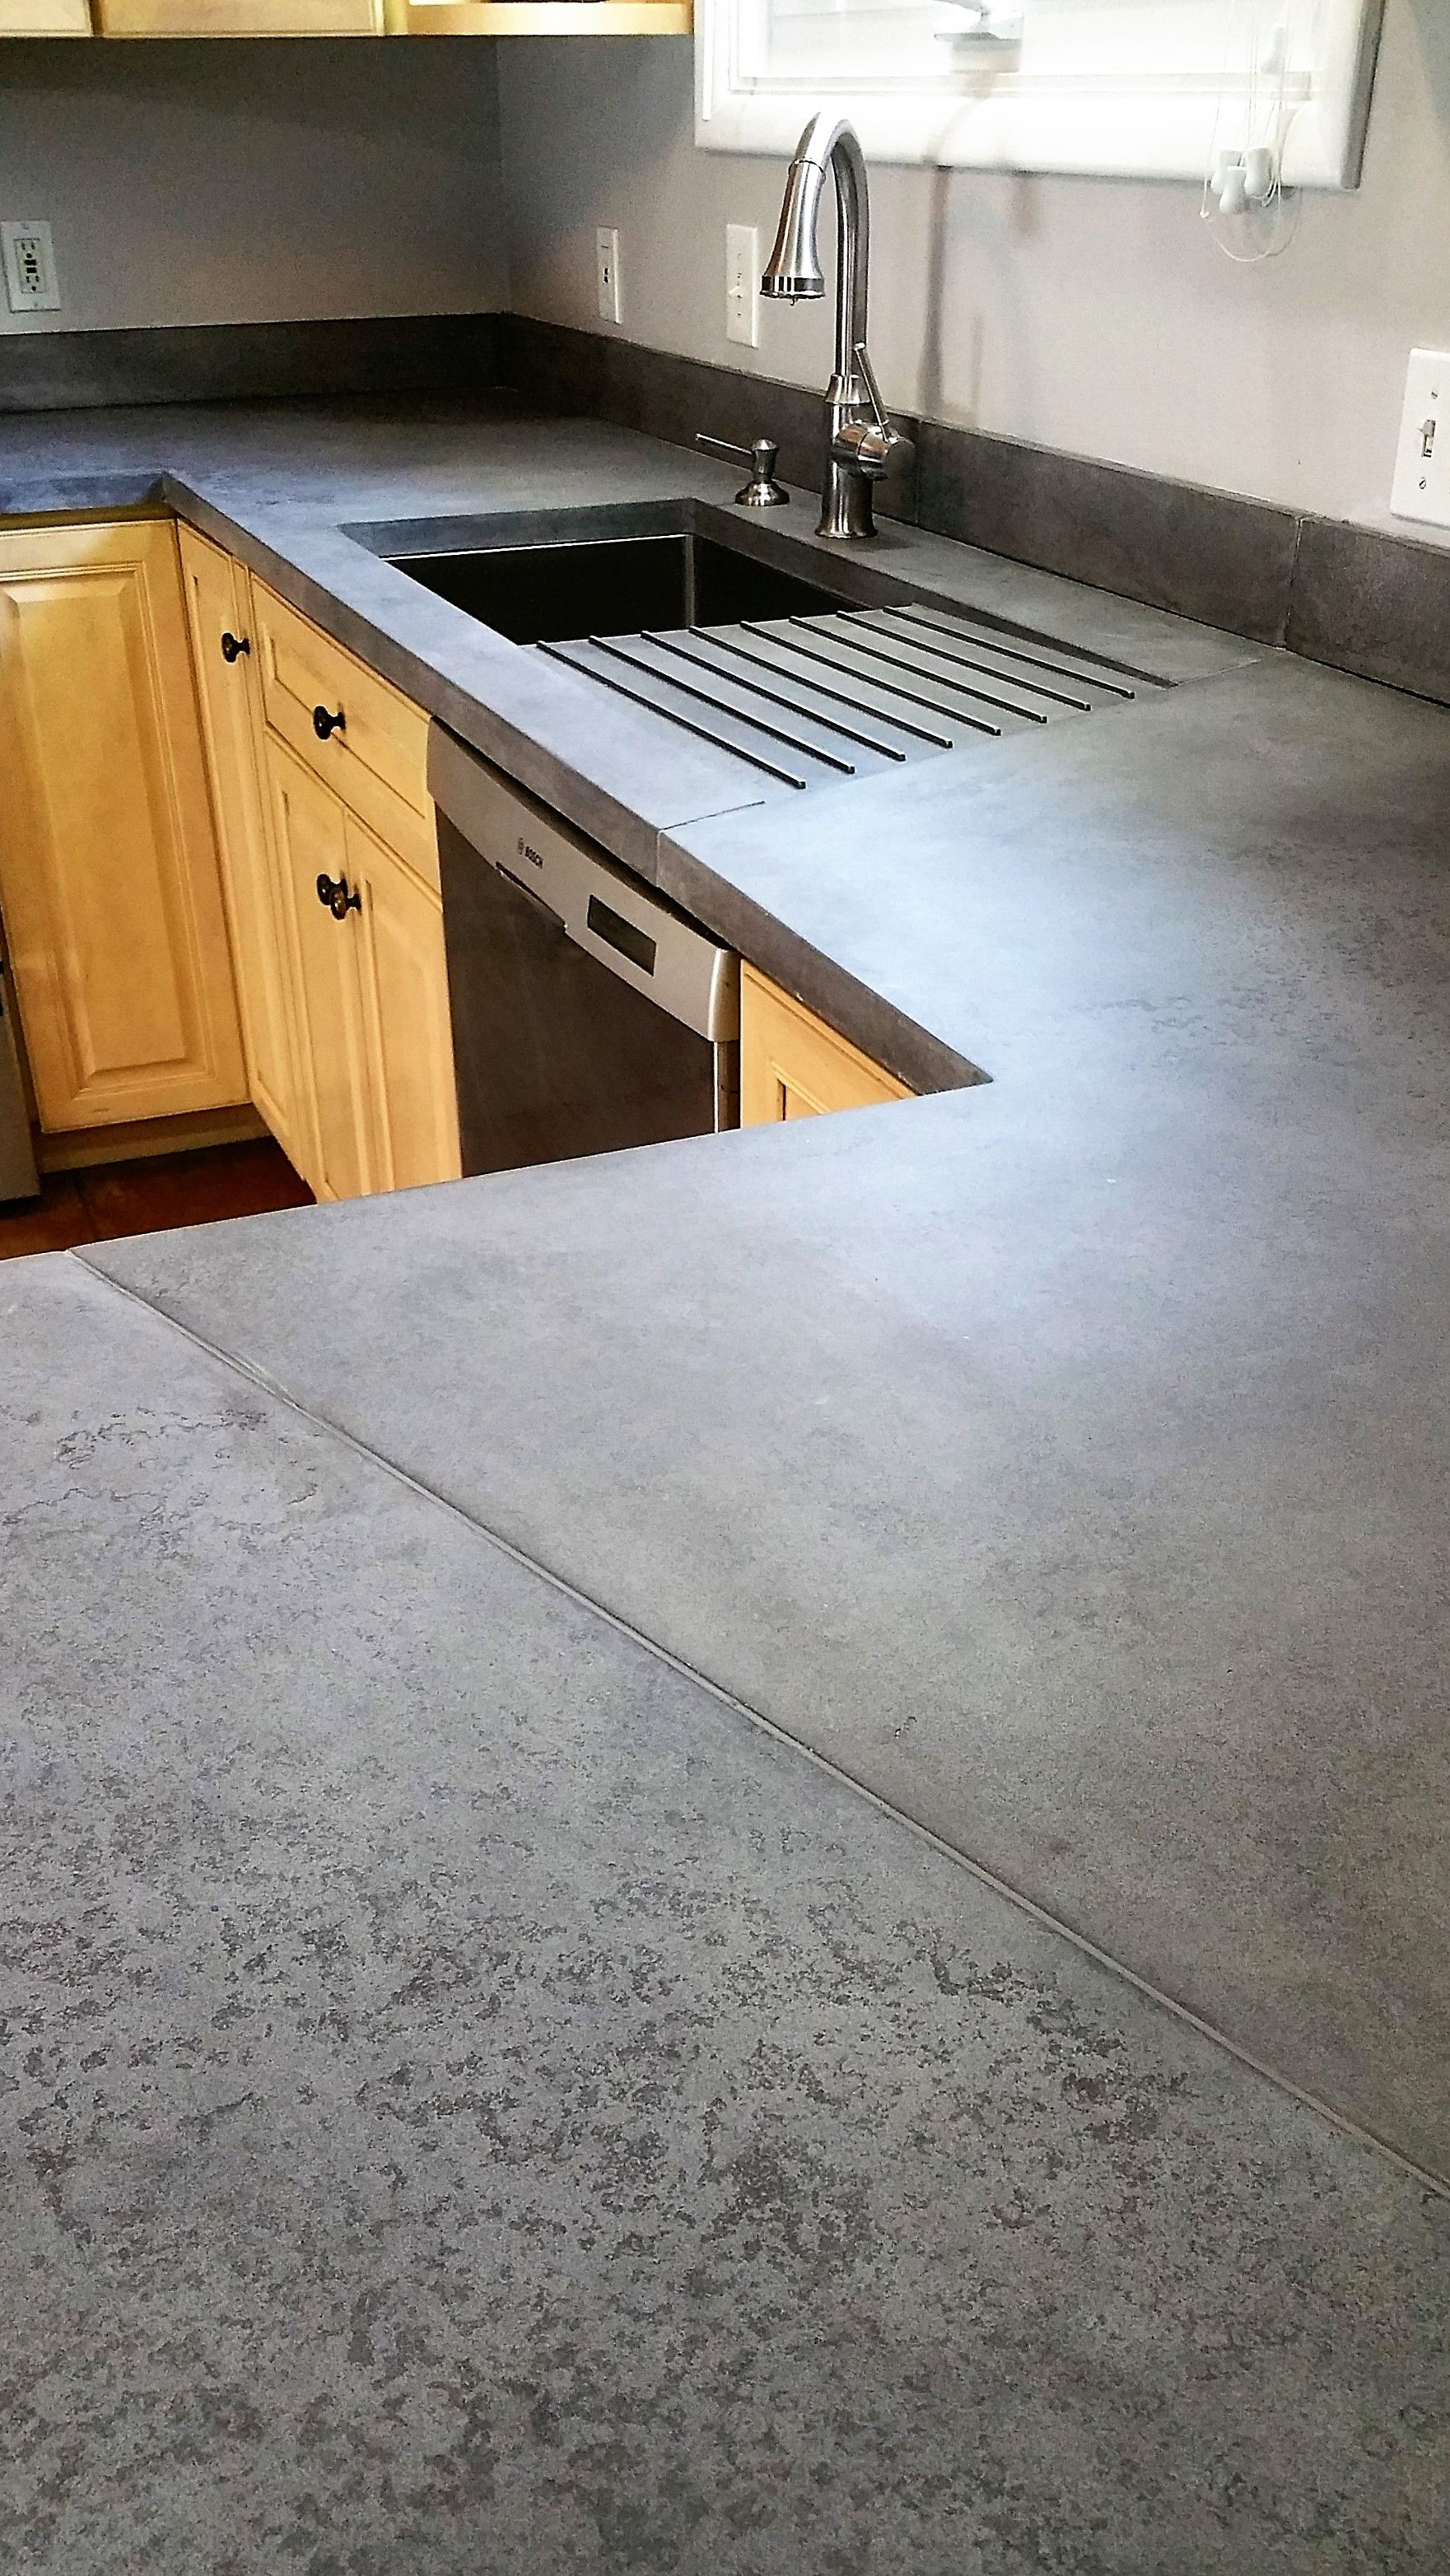 How Much Is Concrete Countertops Interesting Use Of Seams In This Medium Grey Concrete